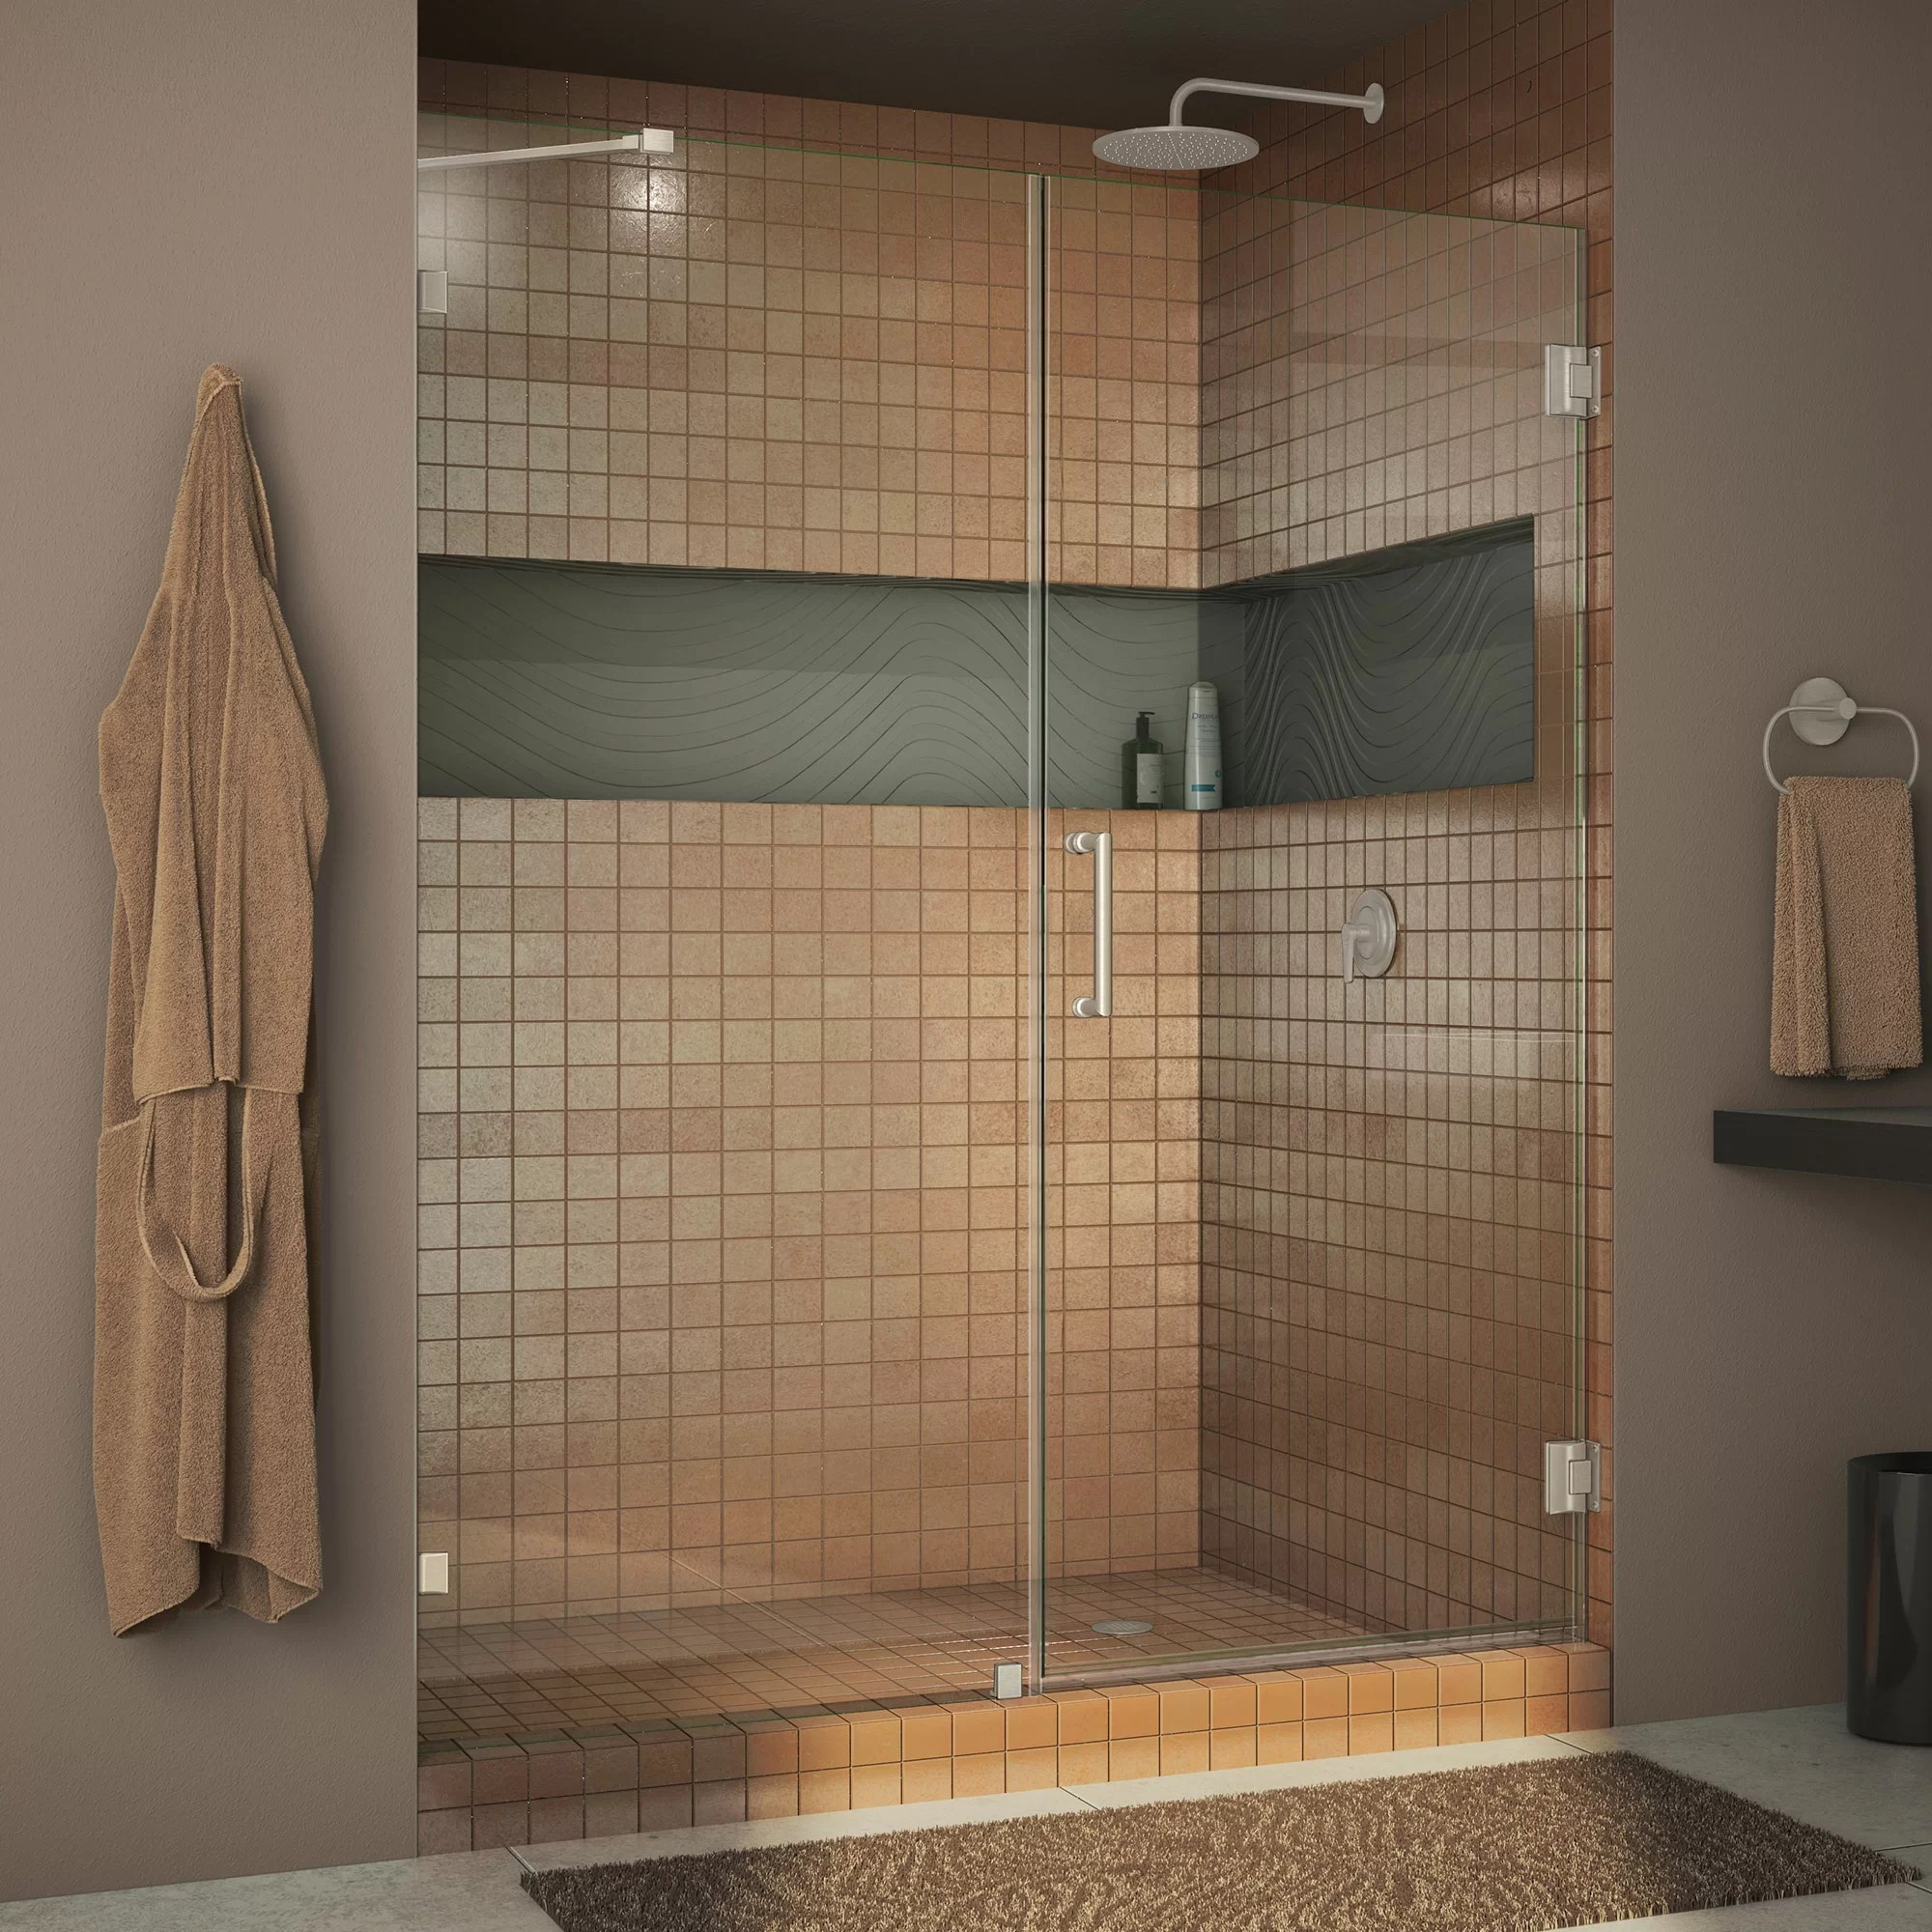 Dreamline Unidoor Lux 51 X 72 Hinged Frameless Shower Door With Clearmax Technology